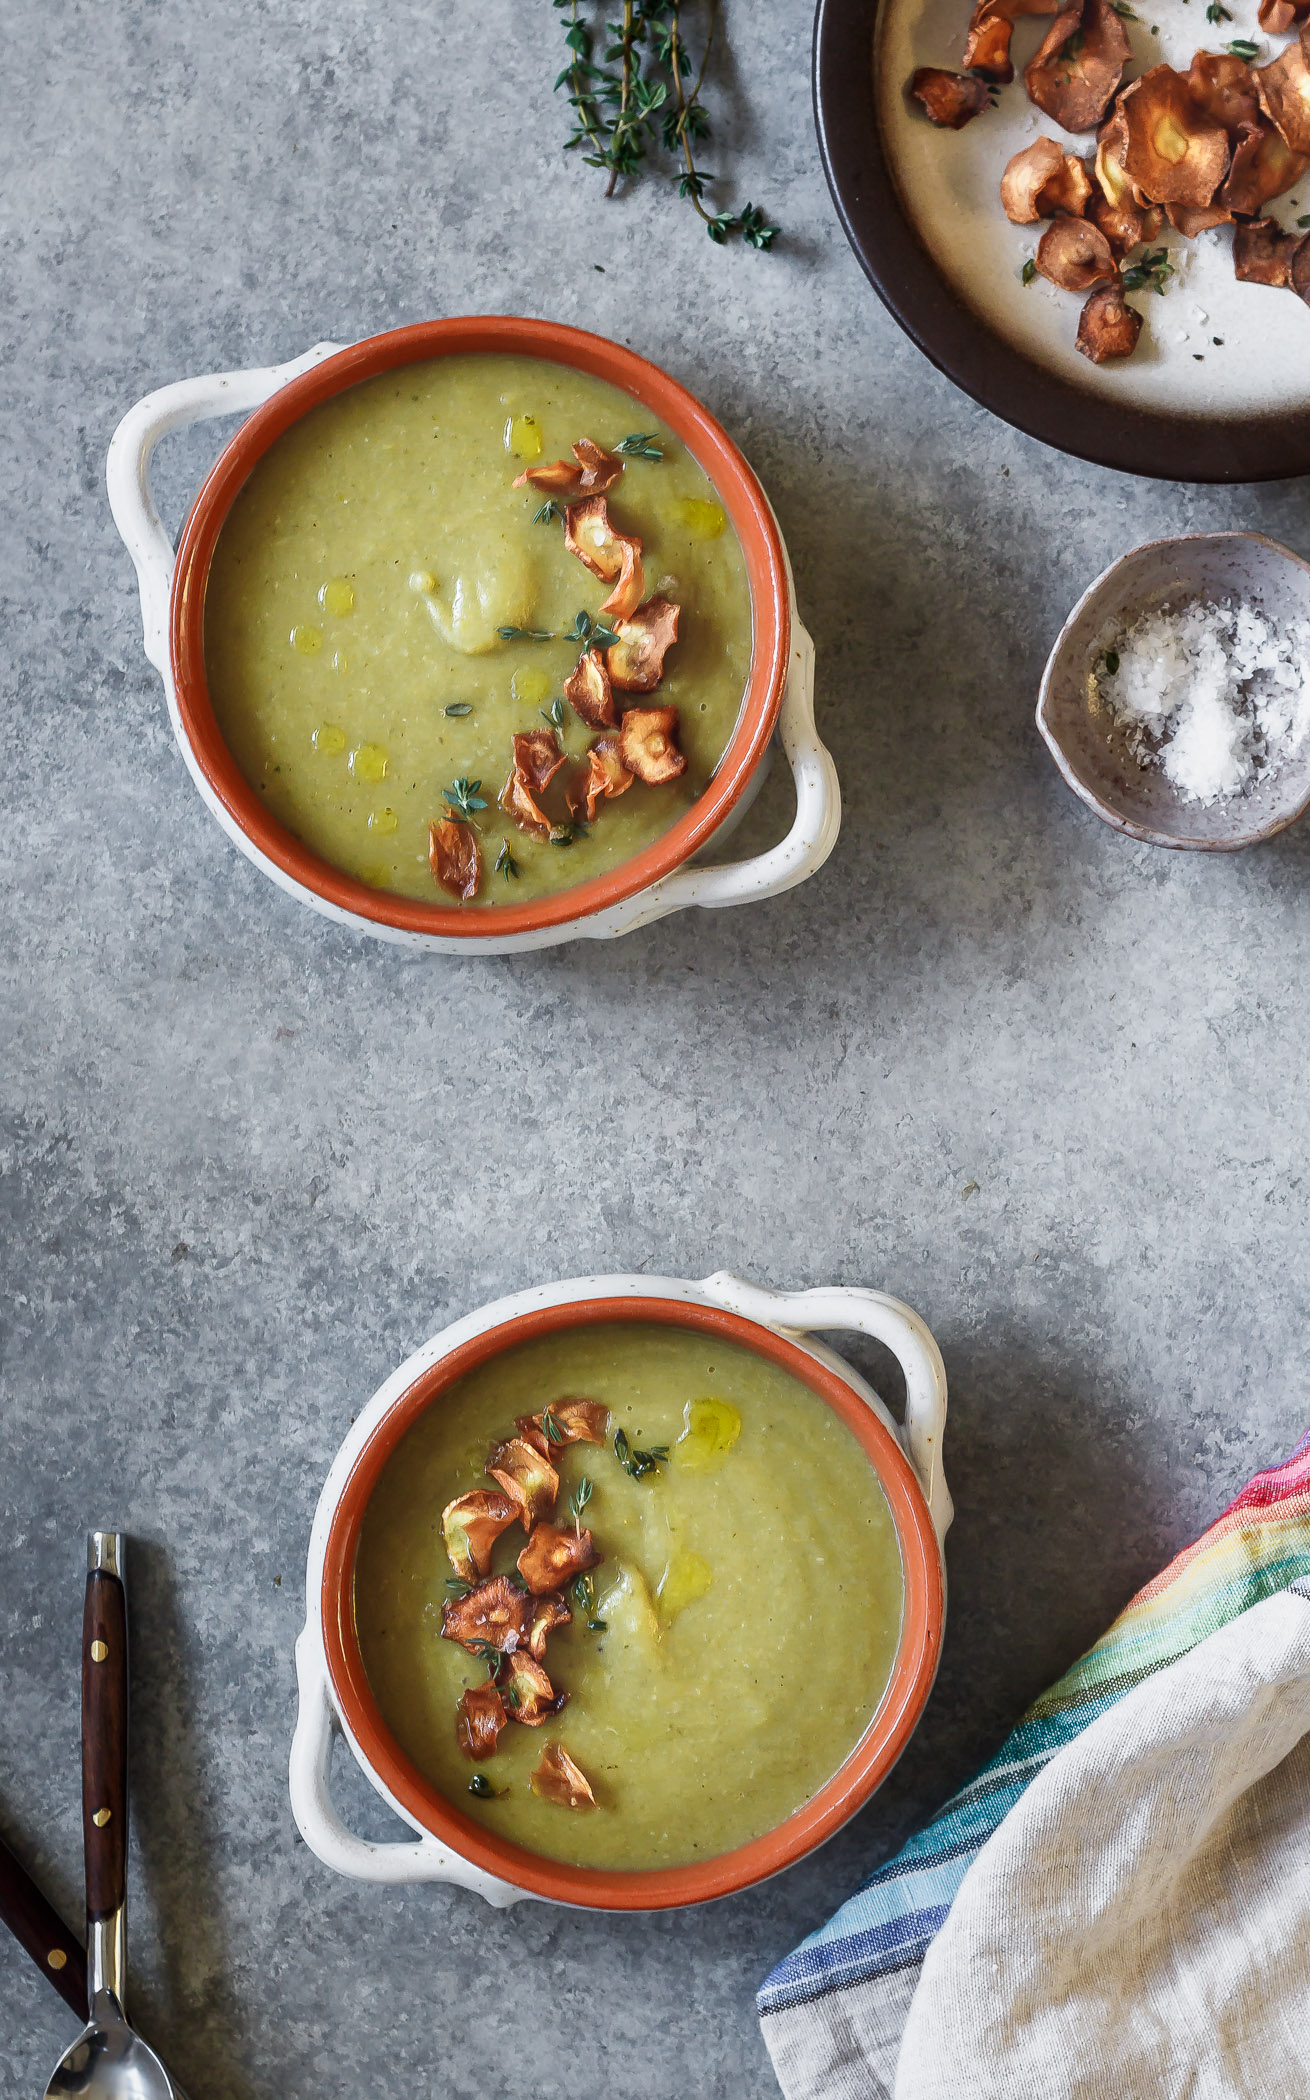 Two bowls of artichoke soup with parsnip chips